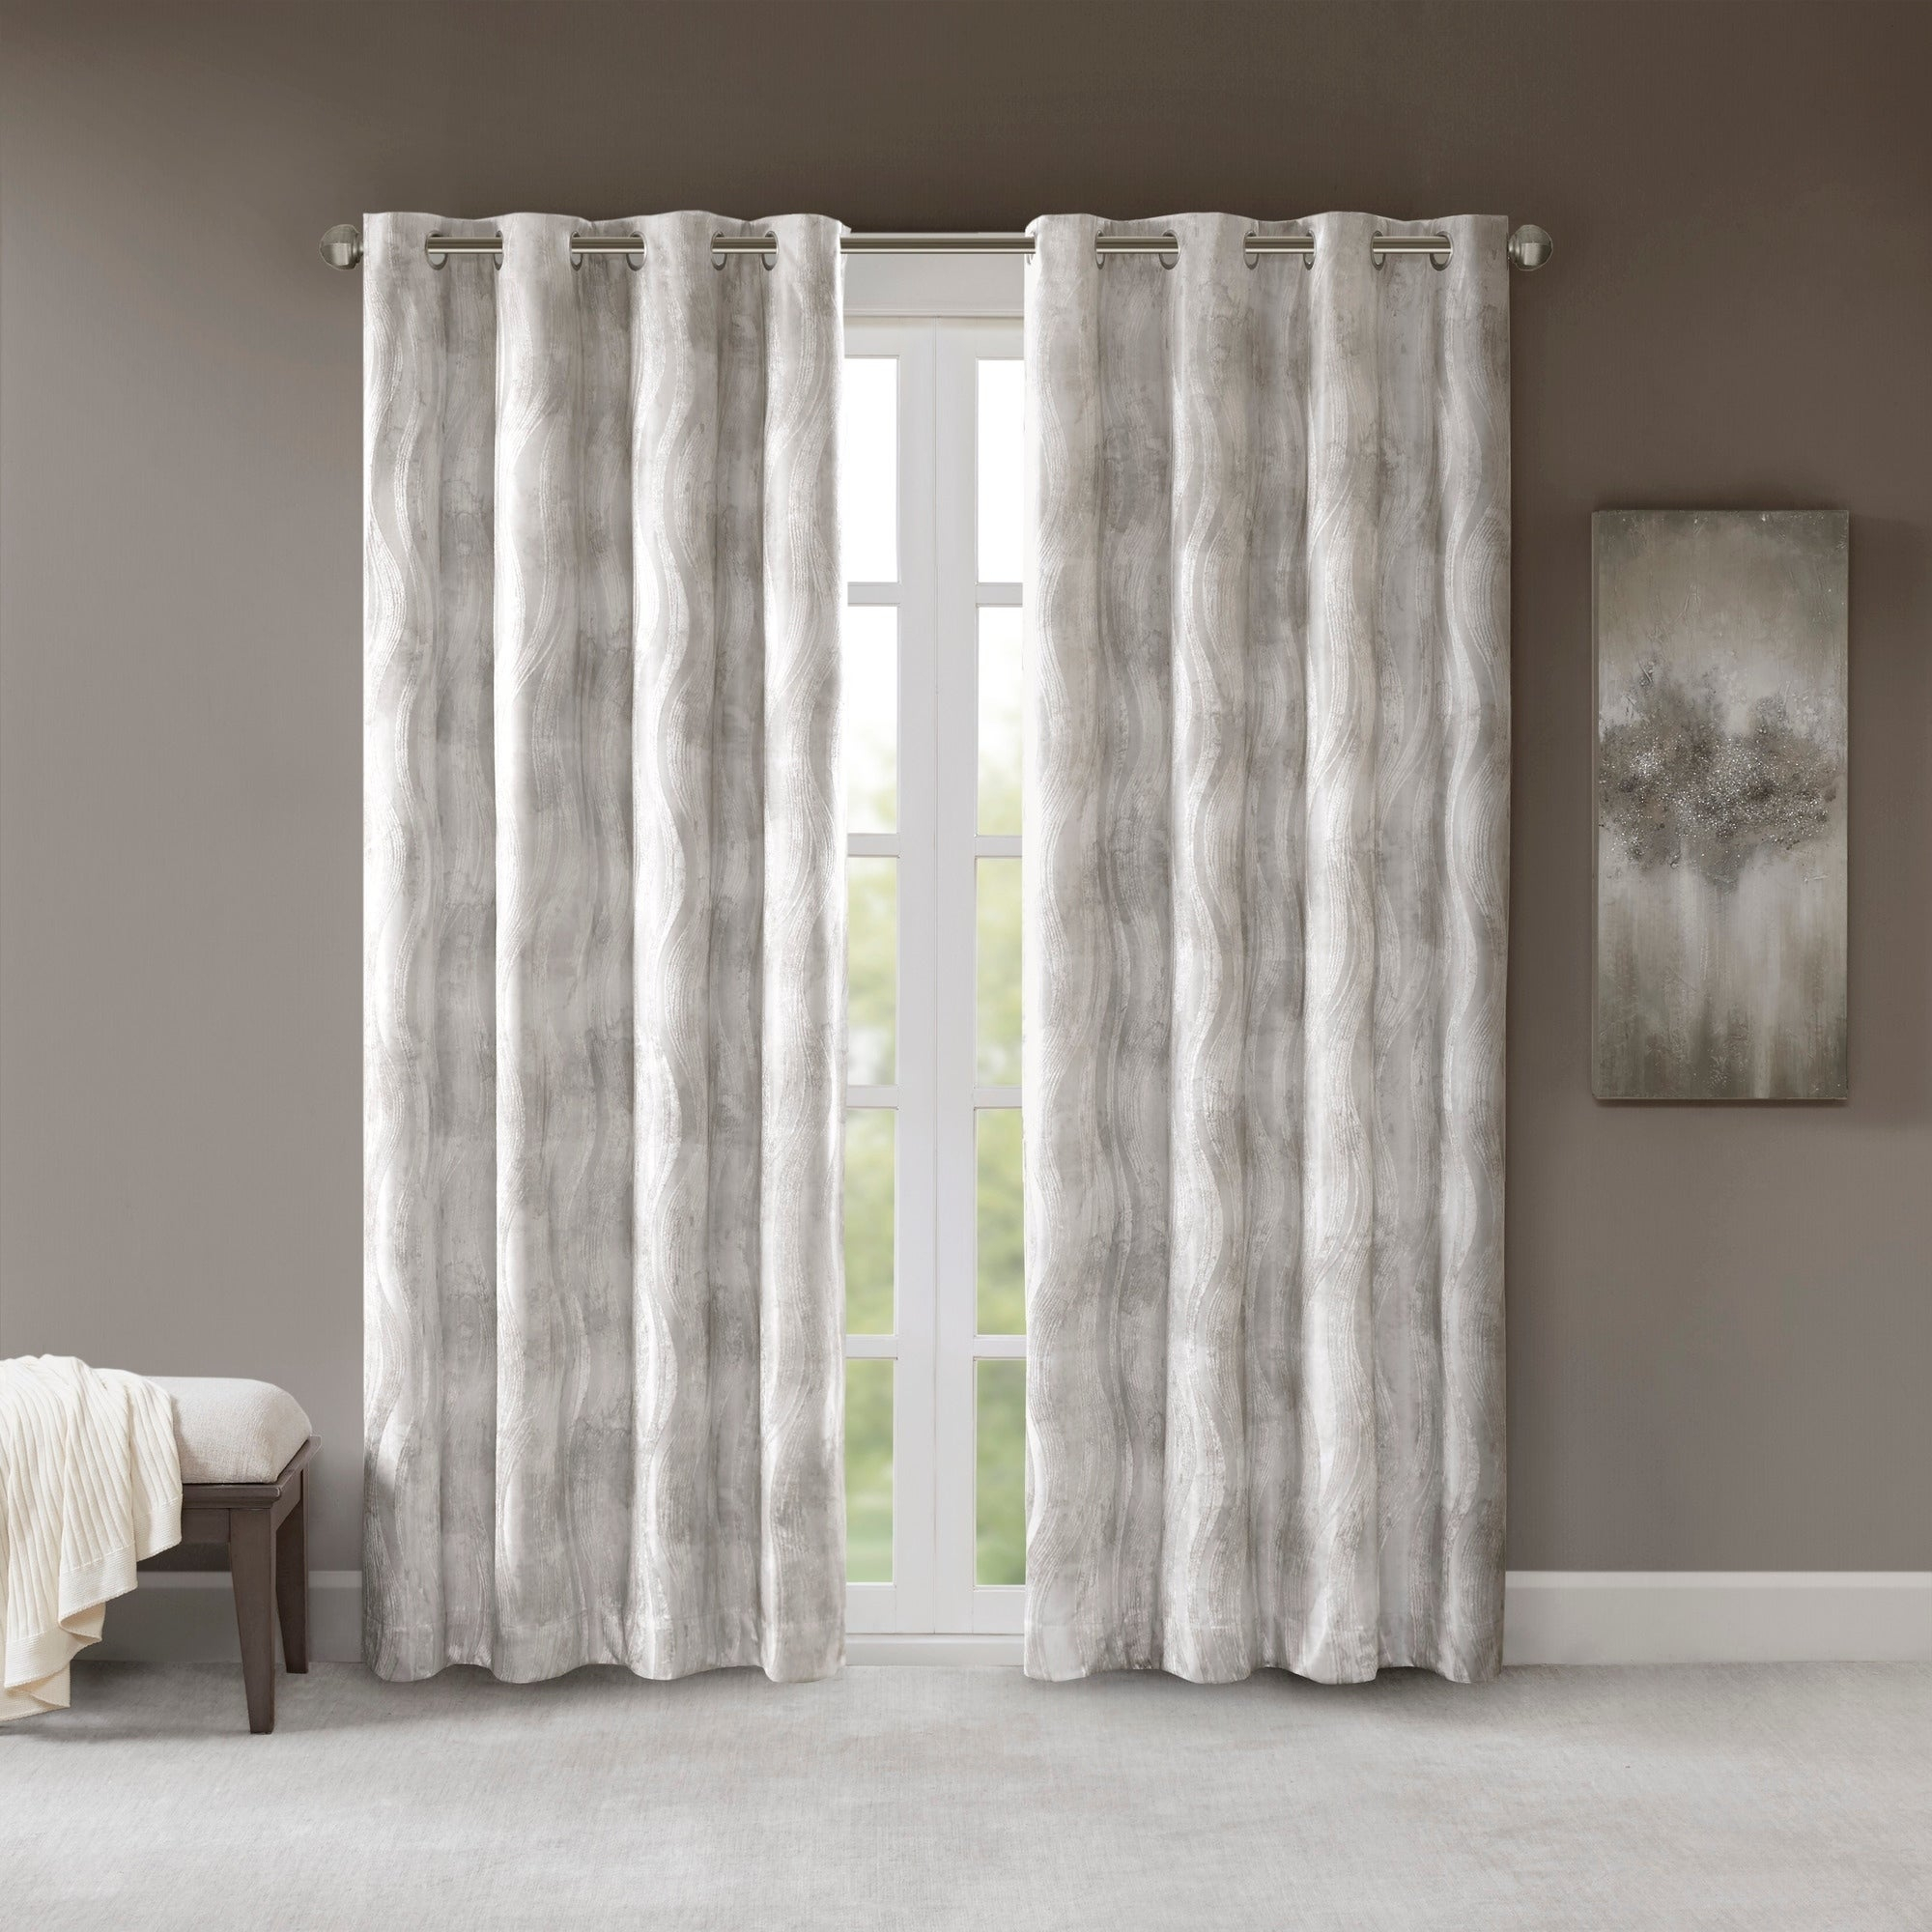 Sunsmart Alastair Ivory Printed Jacquard Total Blackout Single Curtain Panel Pertaining To Gracewood Hollow Tucakovic Energy Efficient Fabric Blackout Curtains (View 20 of 20)